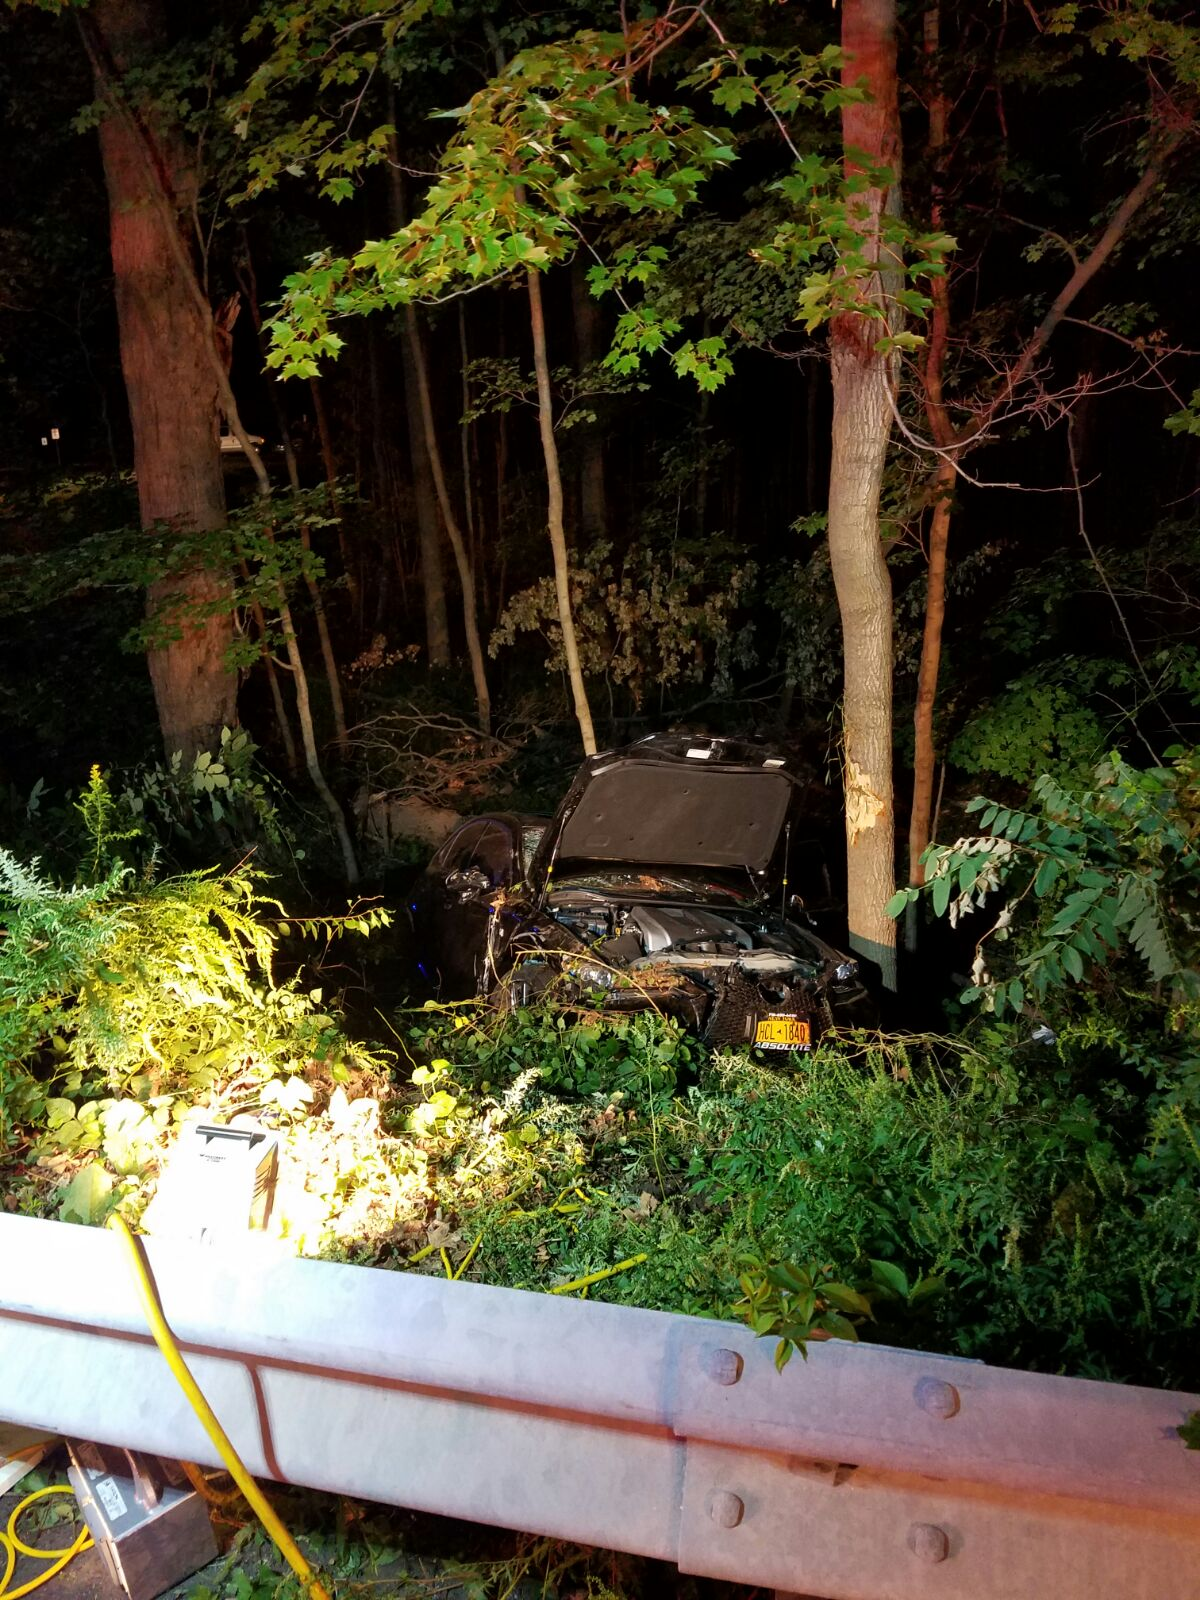 Tragic car accident in Monsey